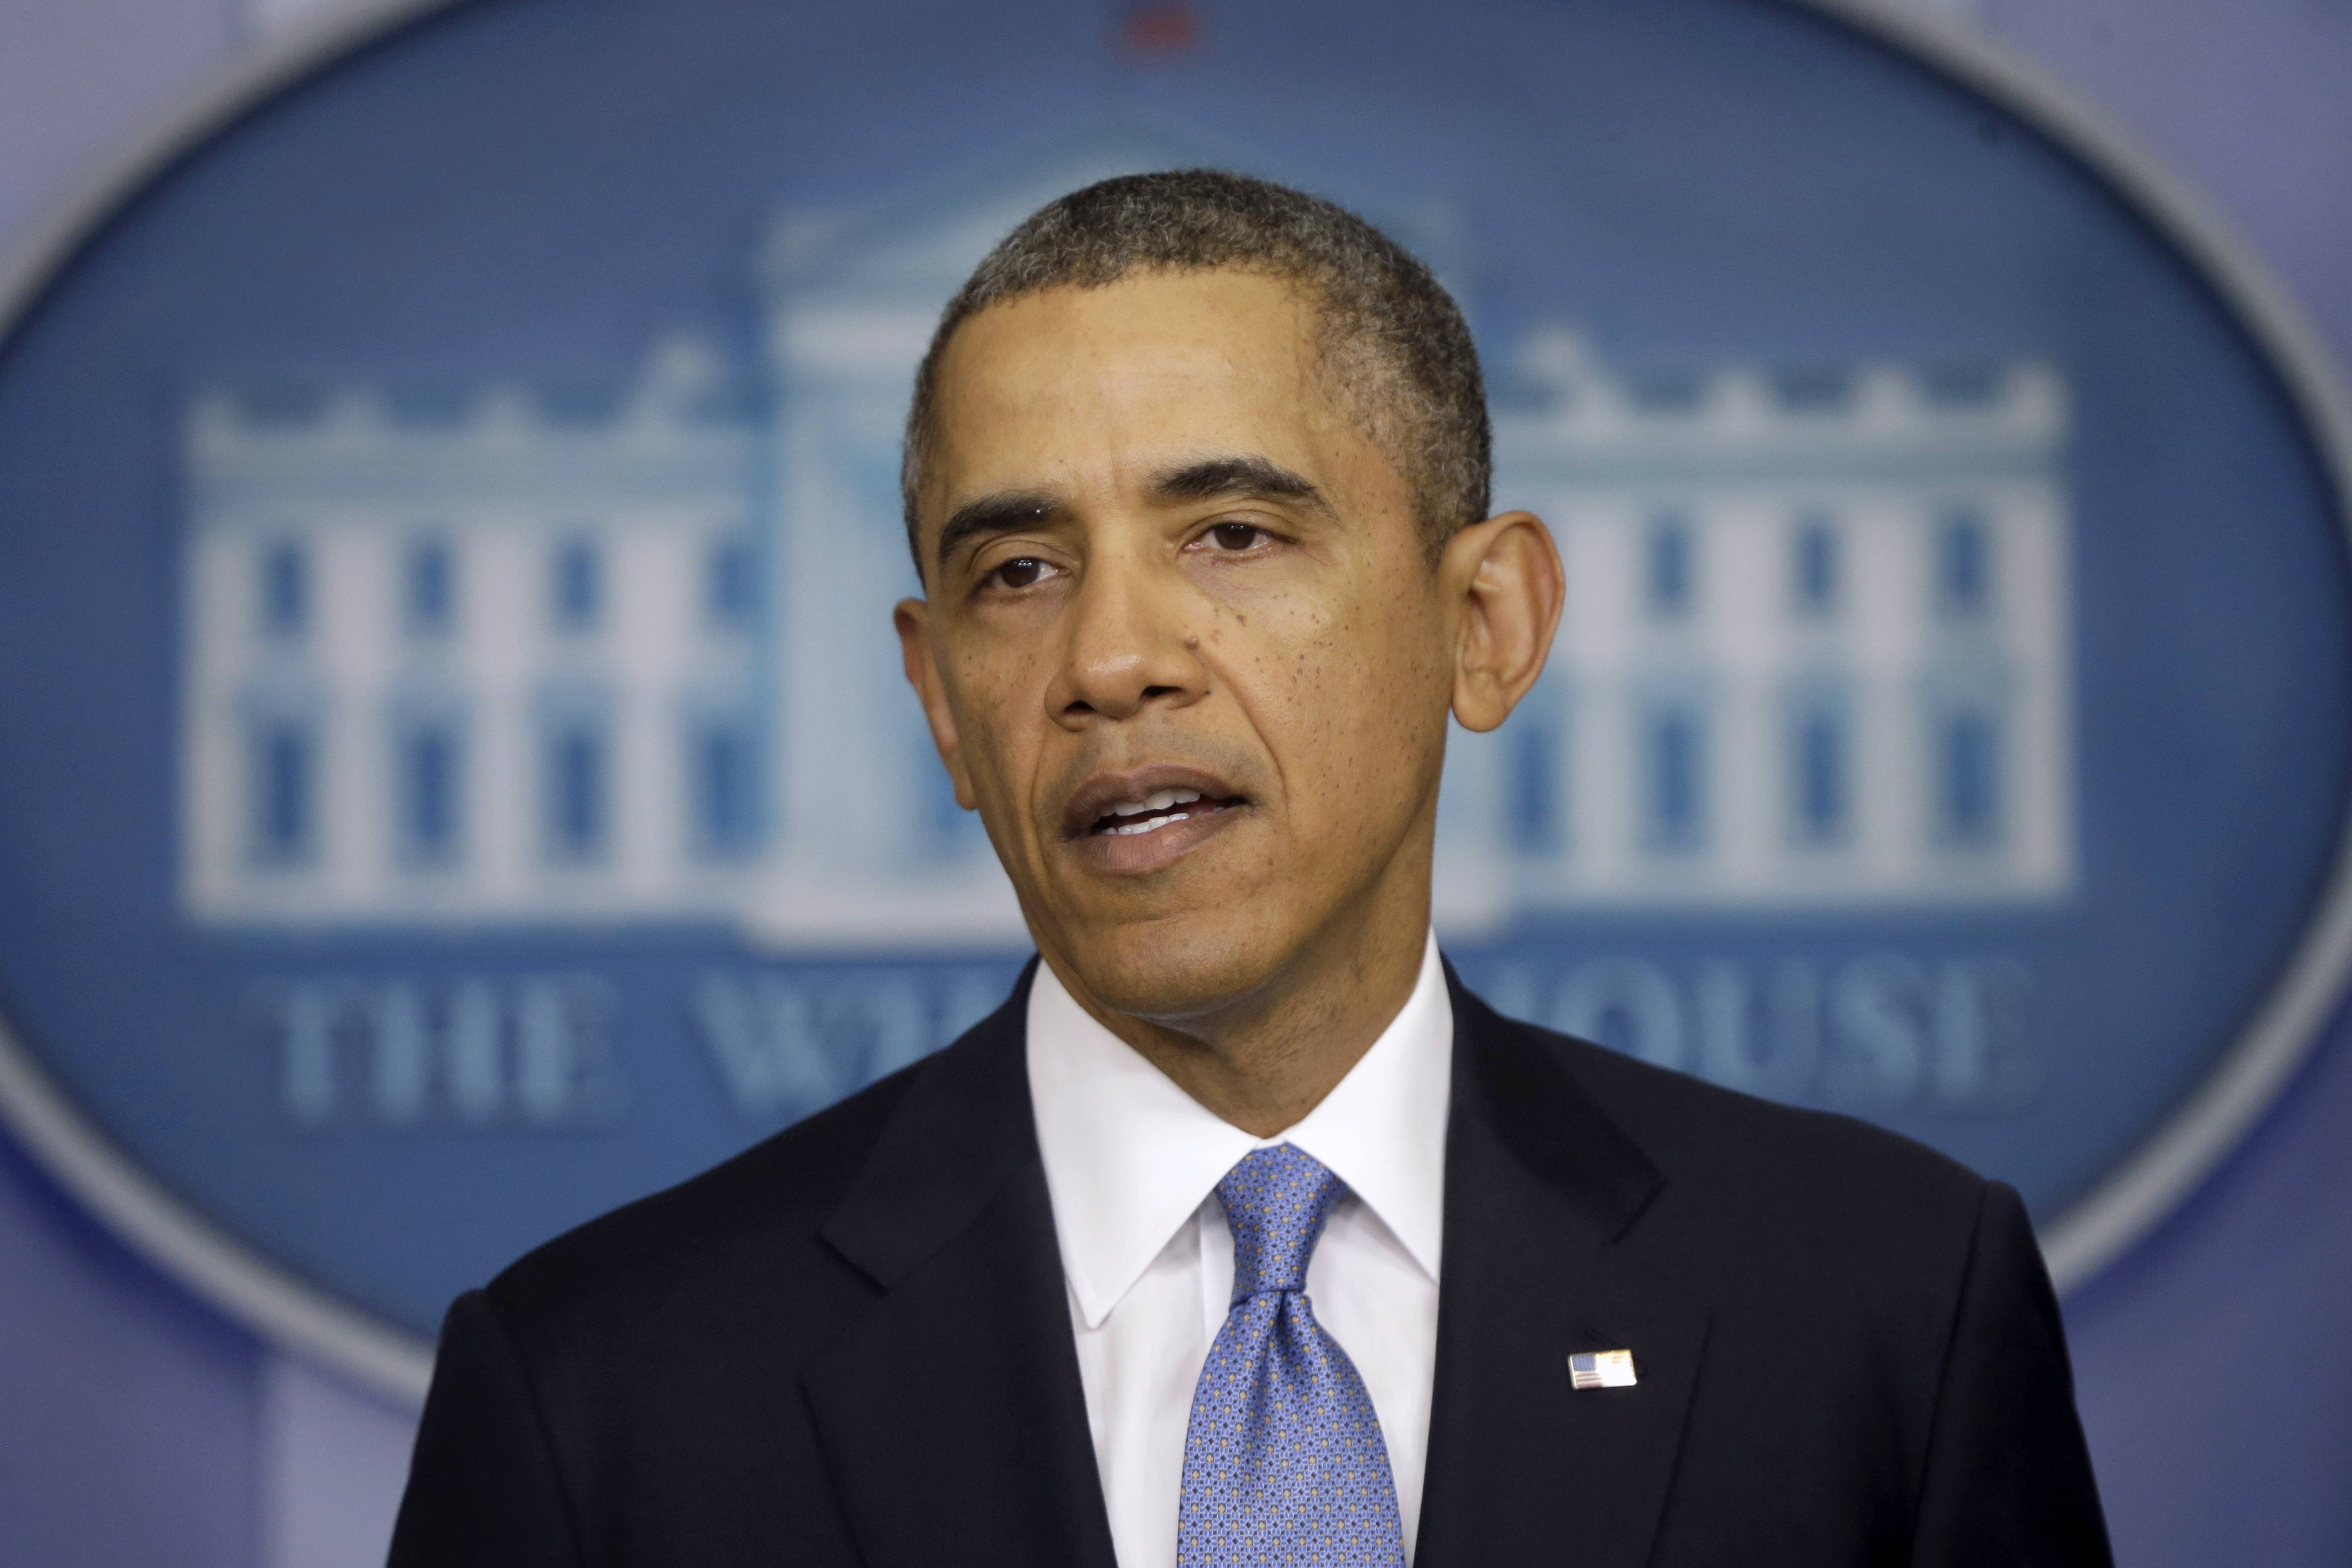 President Barack Obama speaks about Ukraine Monday in the James Brady Press Briefing Room at the White House in Washington. The president imposed sanctions against Russian officials, including advisers to President Vladimir Putin, for their support of Crimea's vote to secede from Ukraine.